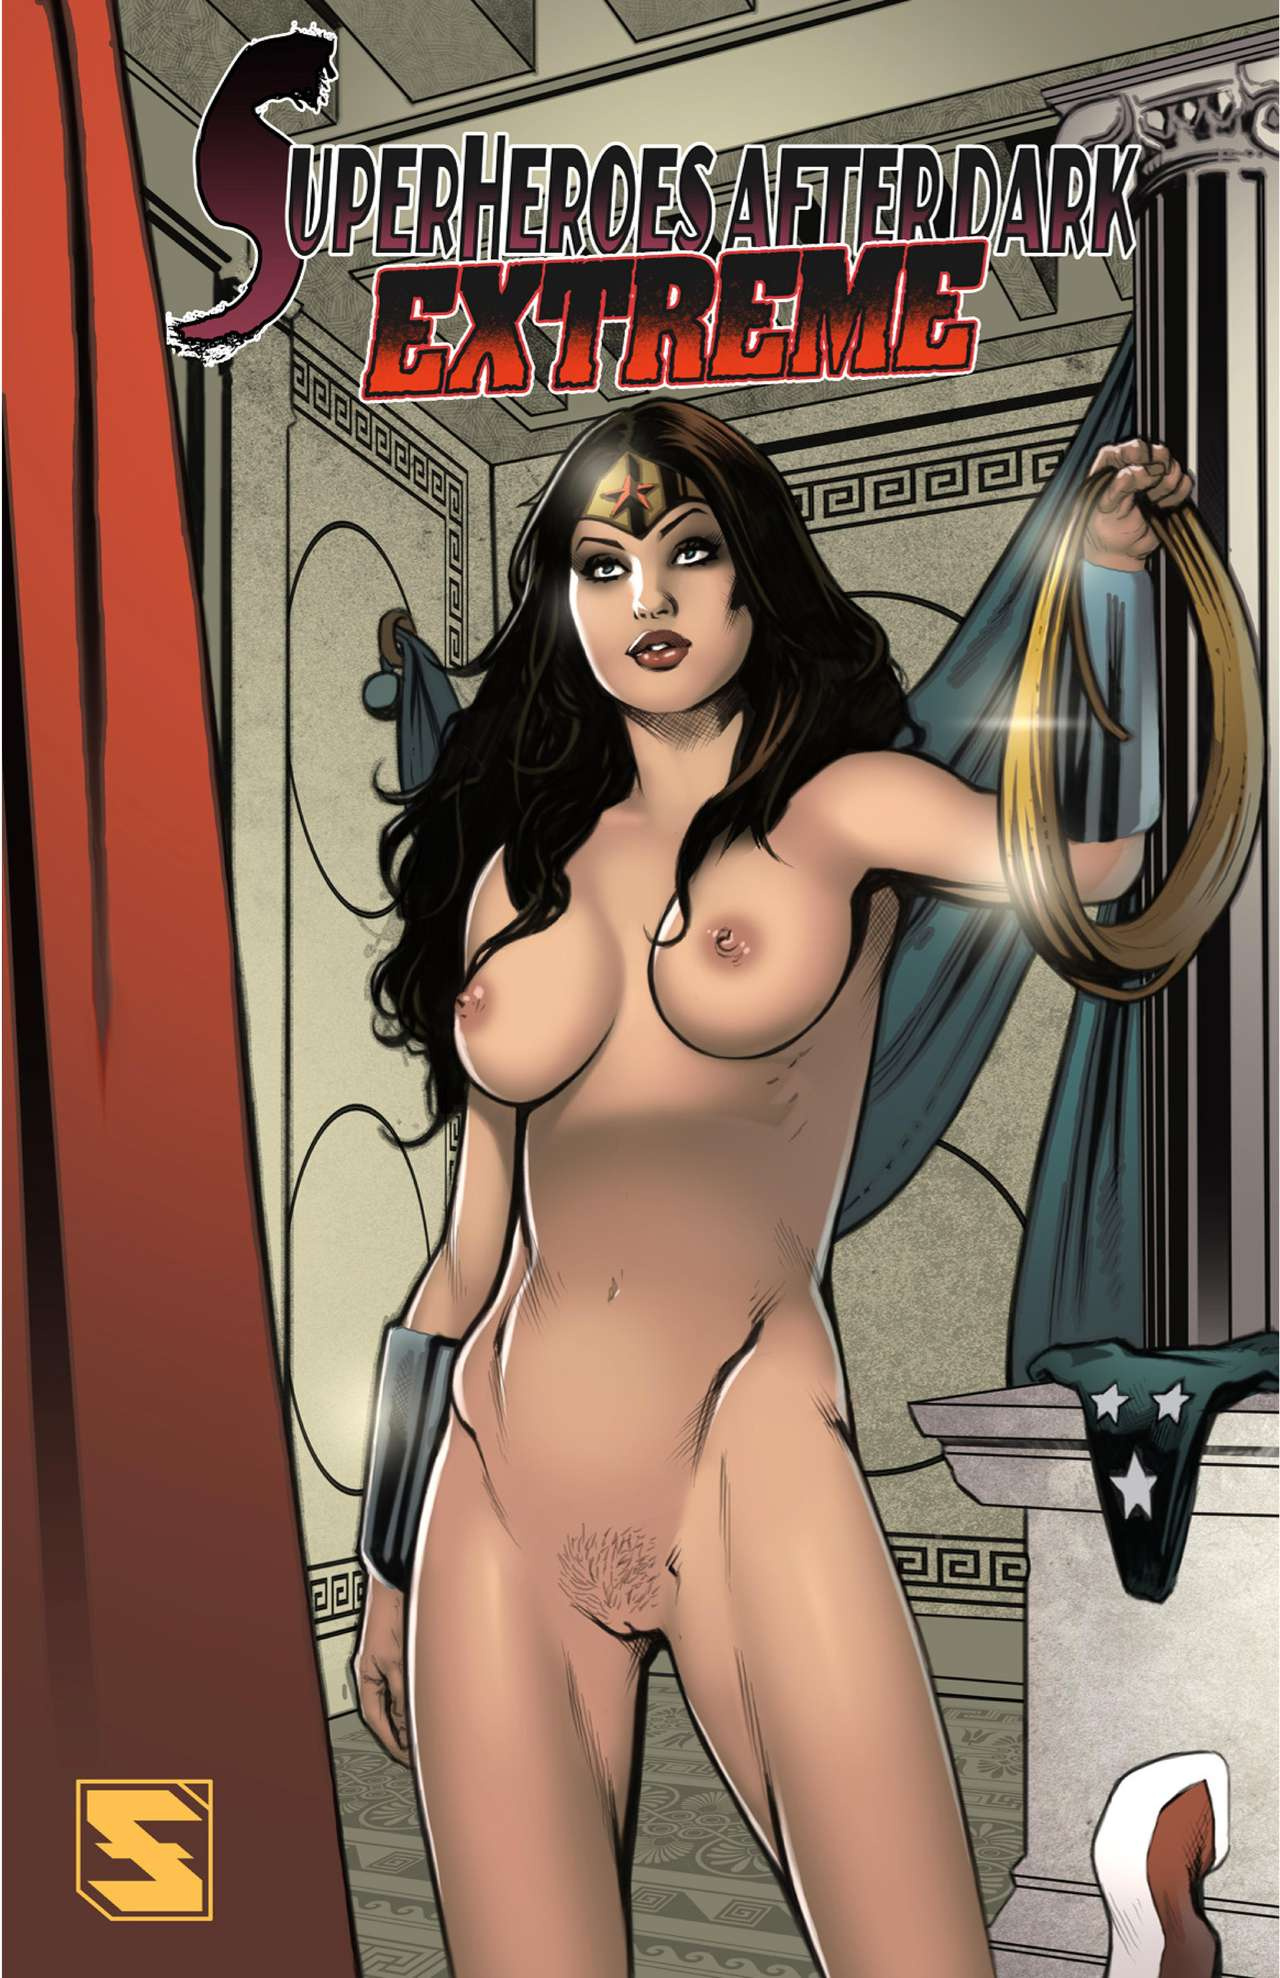 Super Heroes And Their Naughty Kinks